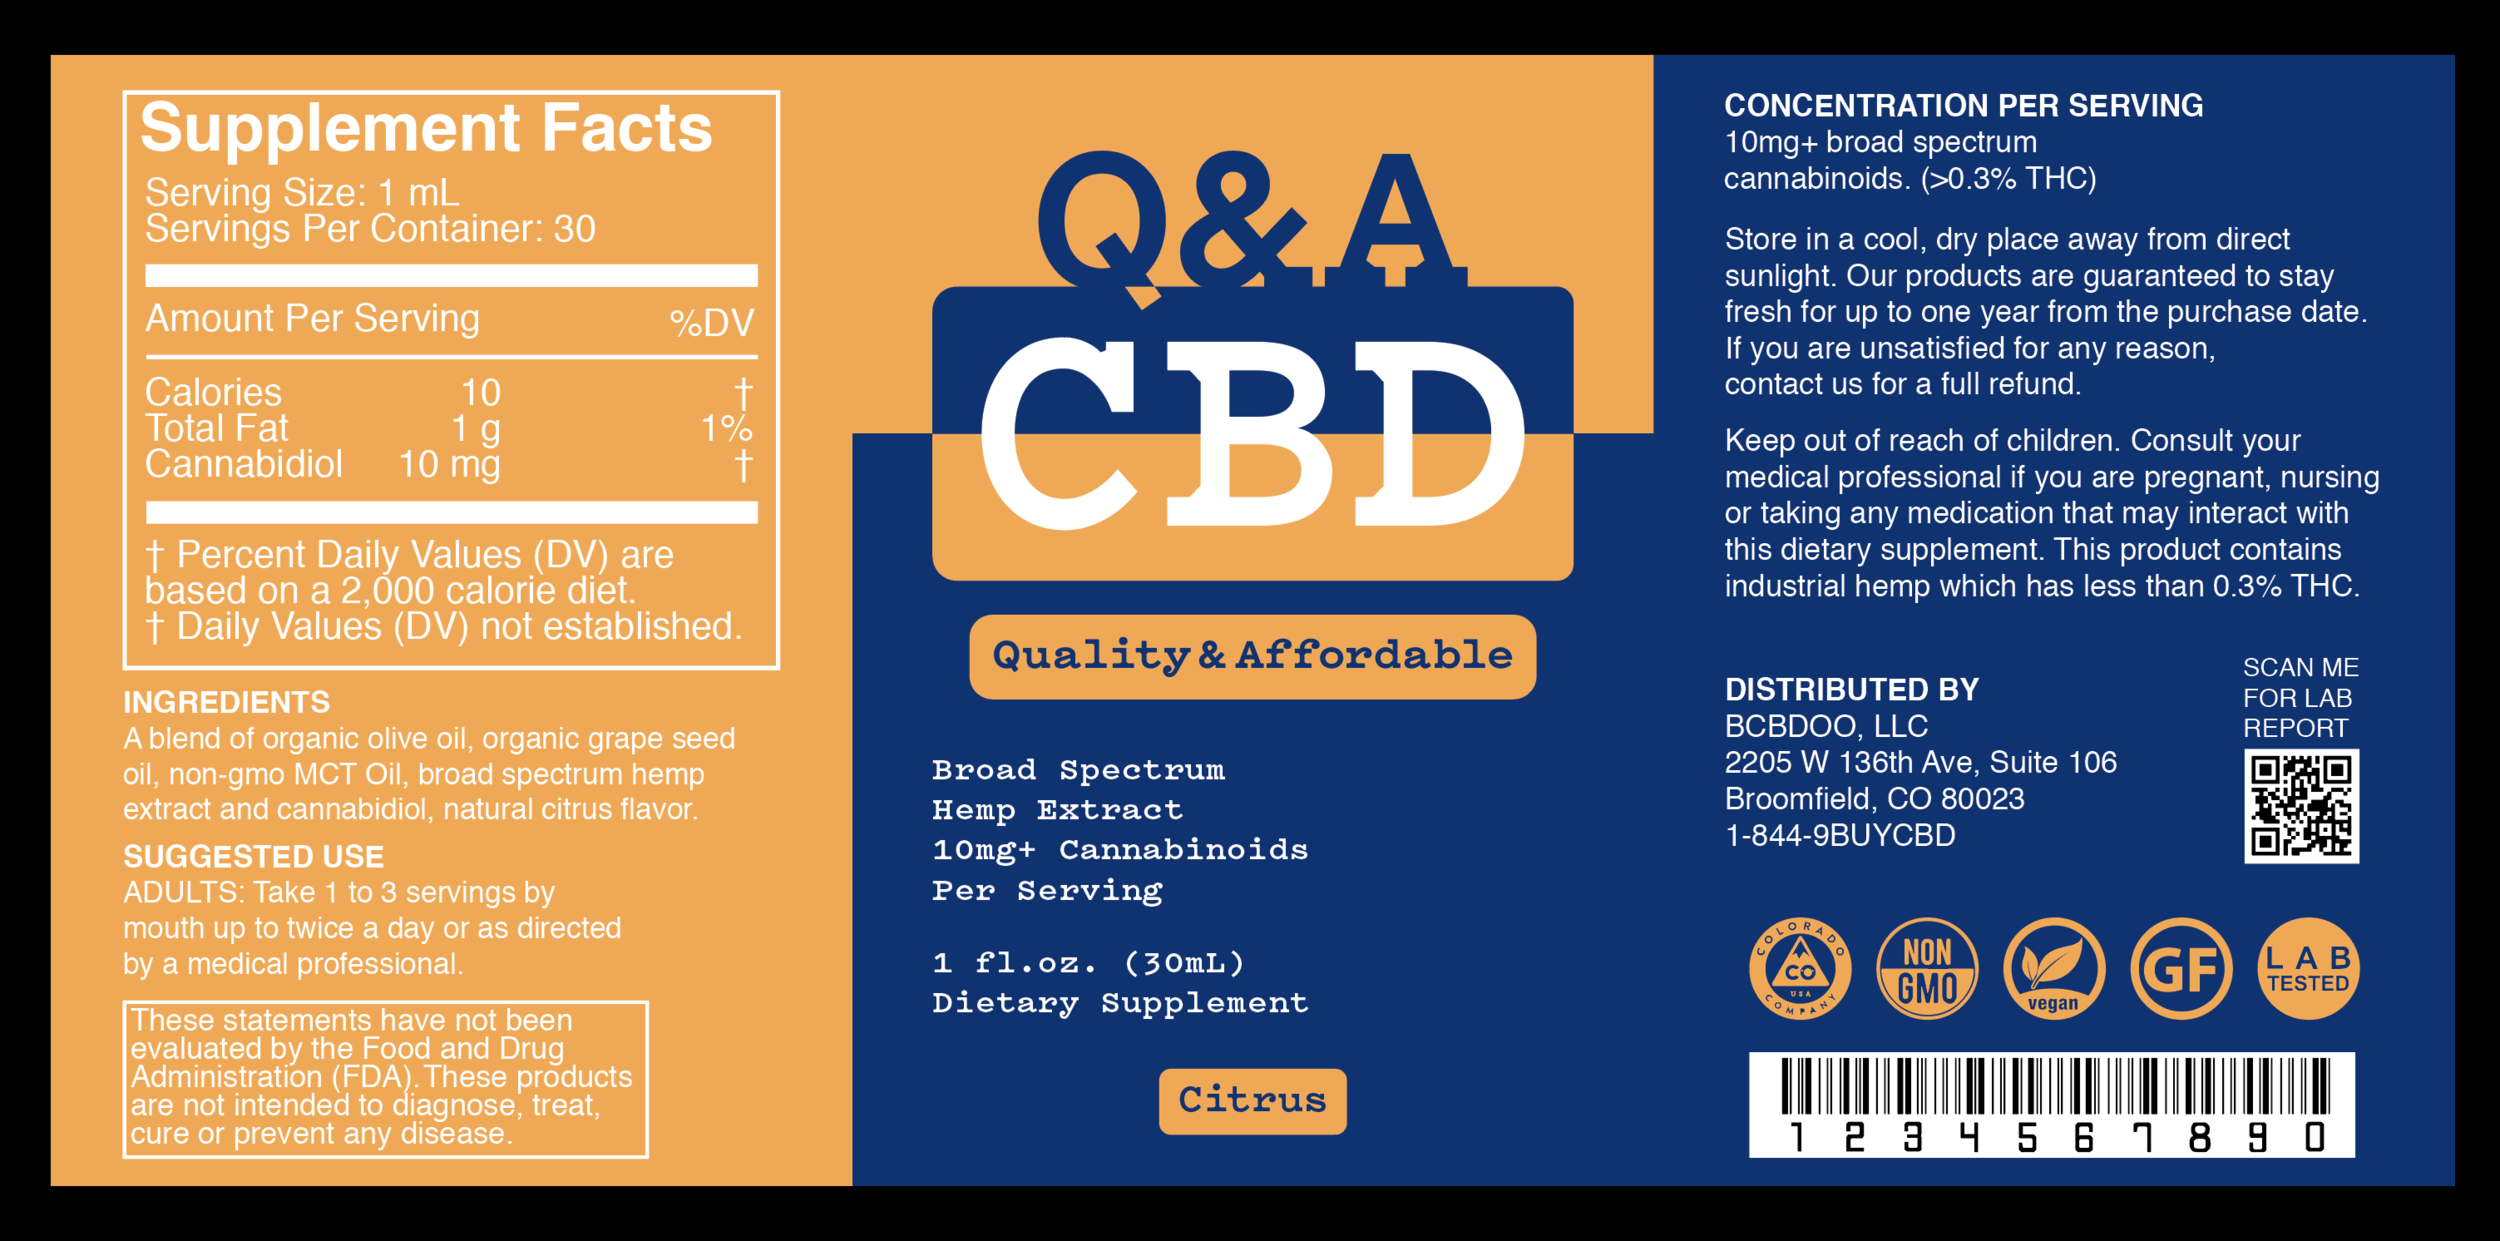 Q&A CBD Citrus Label.